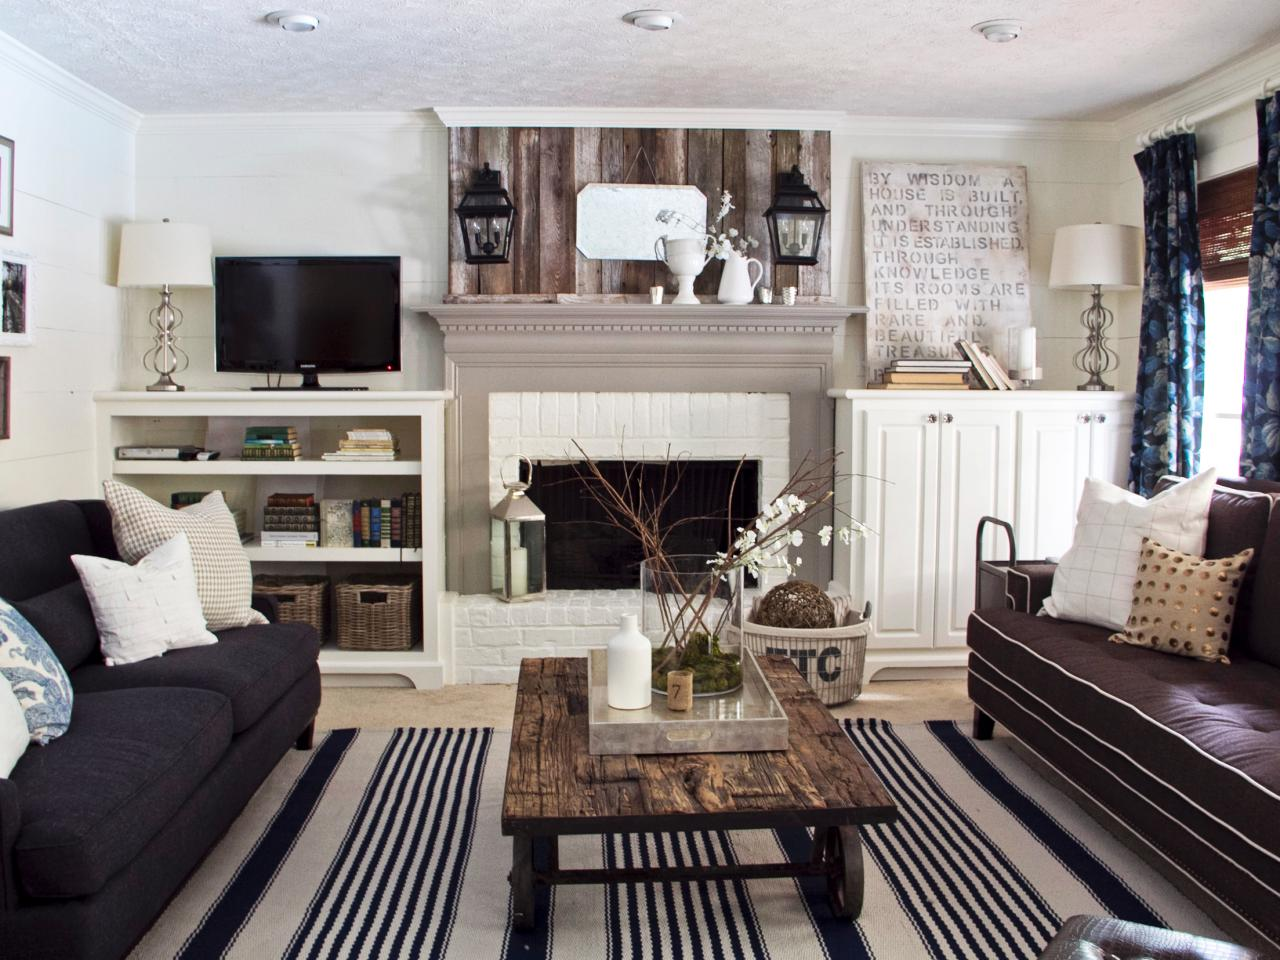 DP_Darnell-Cottage-Living-Room-2_ss4x3.jpg.rend.hgtvcom.1280.960